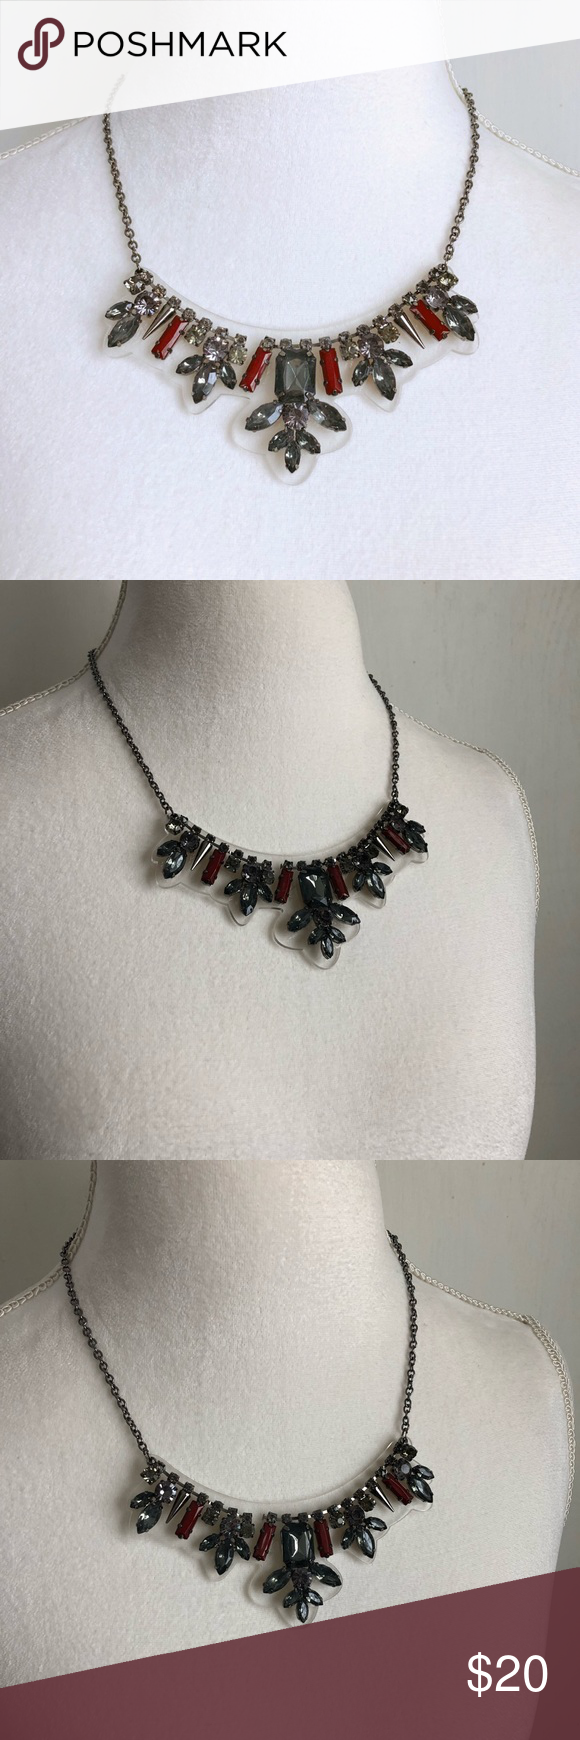 Statement Necklace Gorgeous Statement Necklace With A Gun